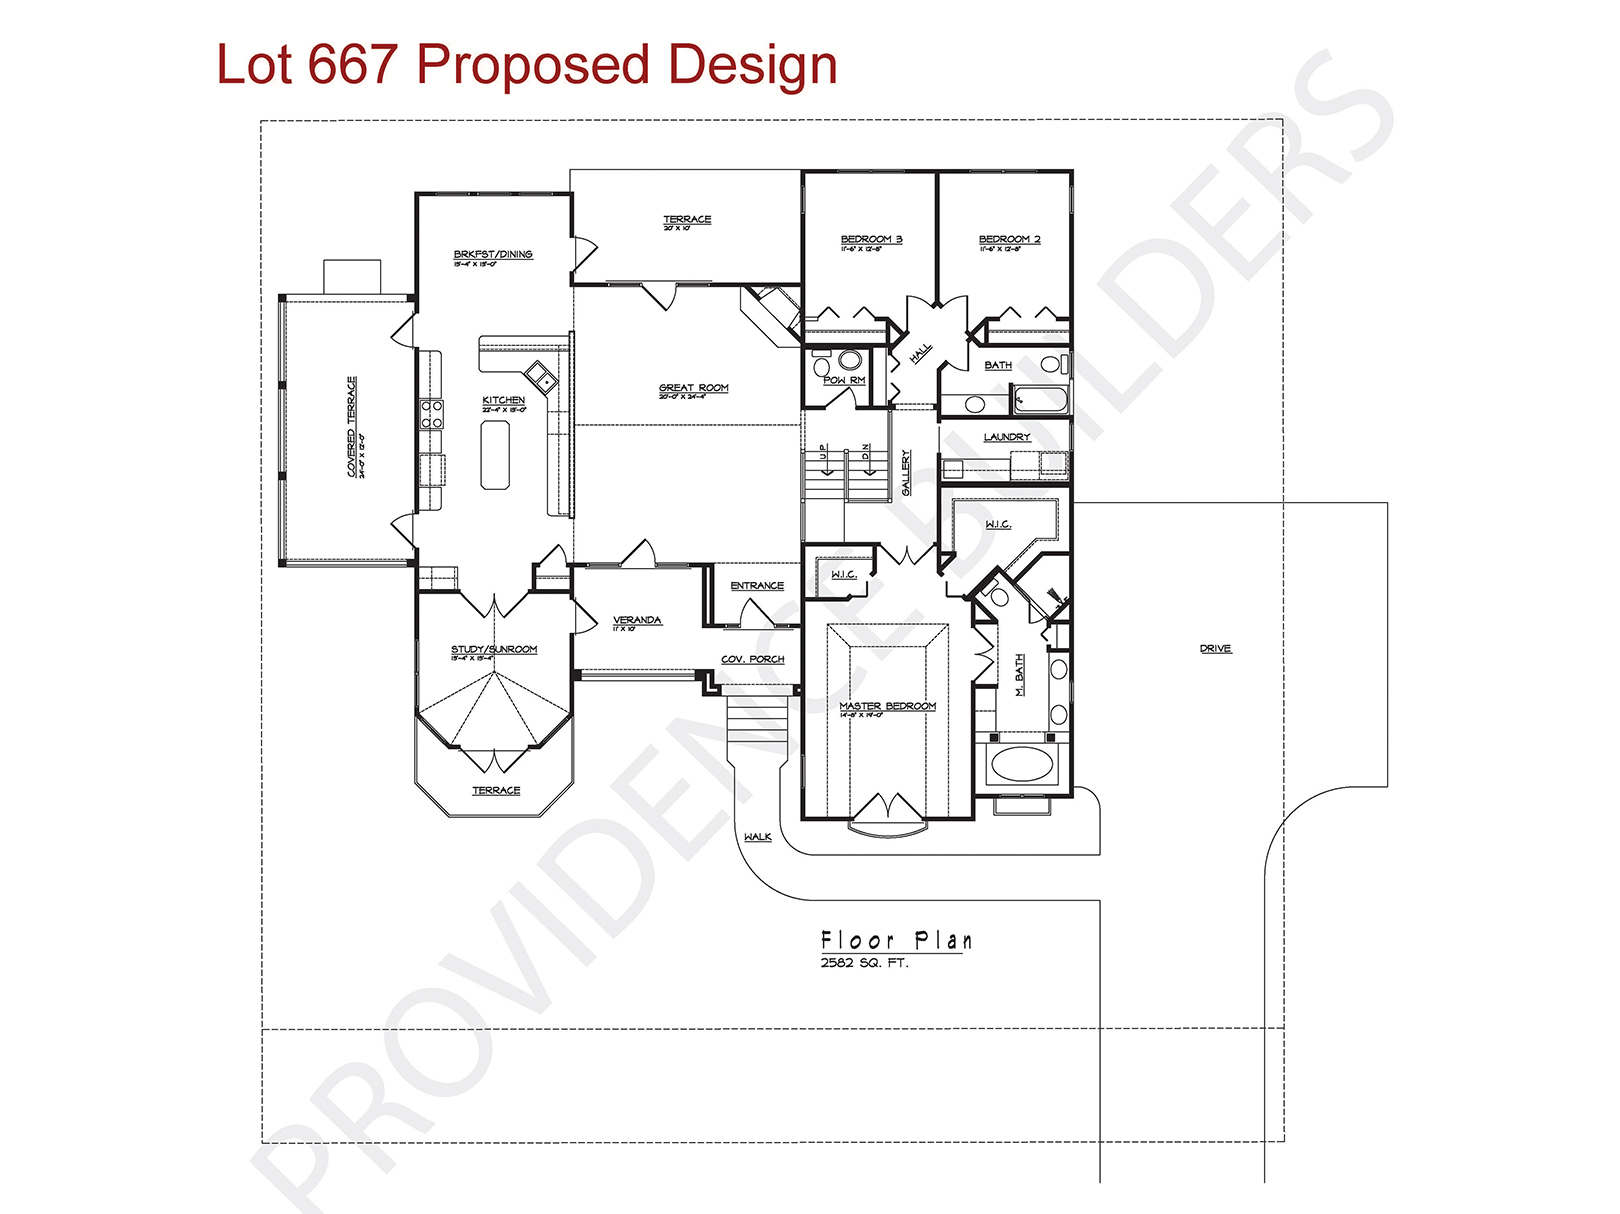 Lot 667 Floor Plan